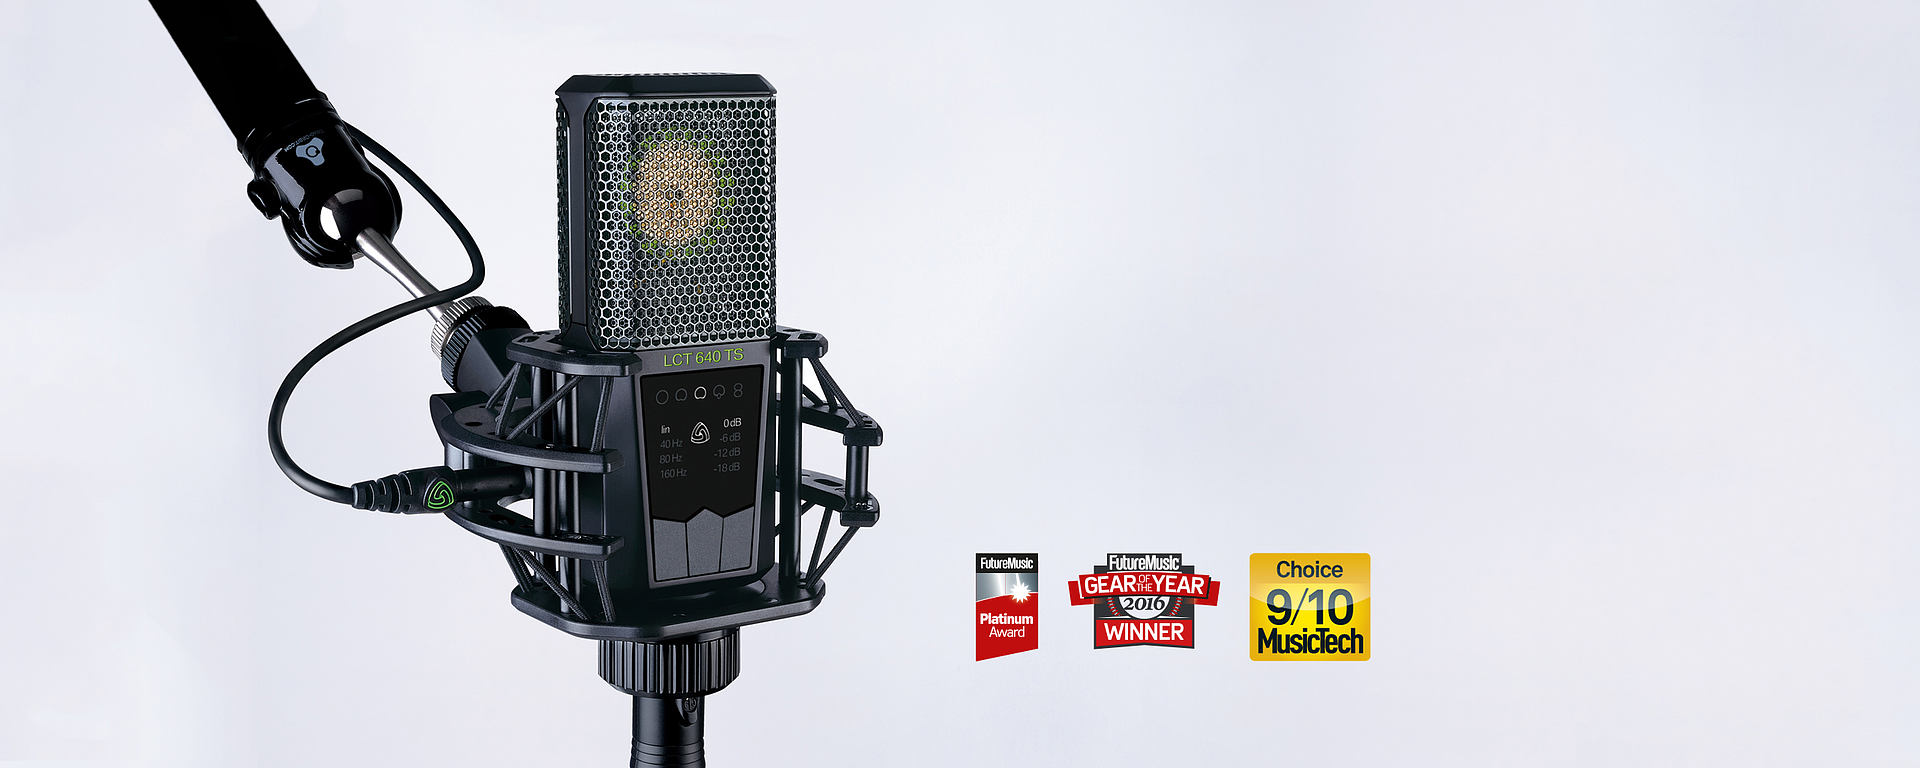 LEWITT LCT 640 TS - What if you could revisit the recording session during post-production?